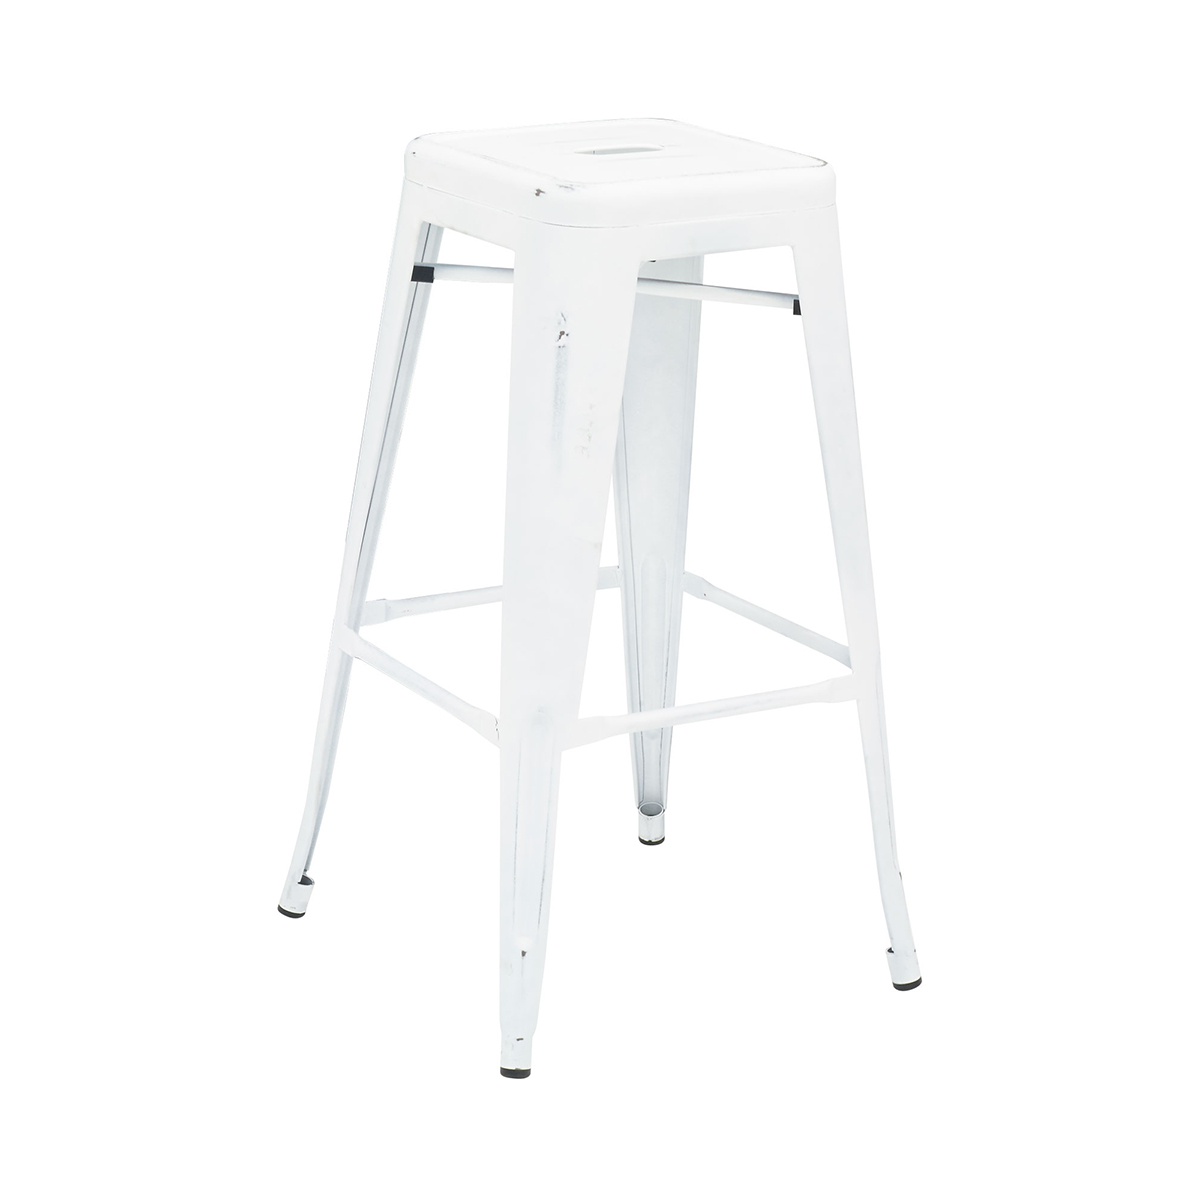 _0000s_0012_industrial backless barstool